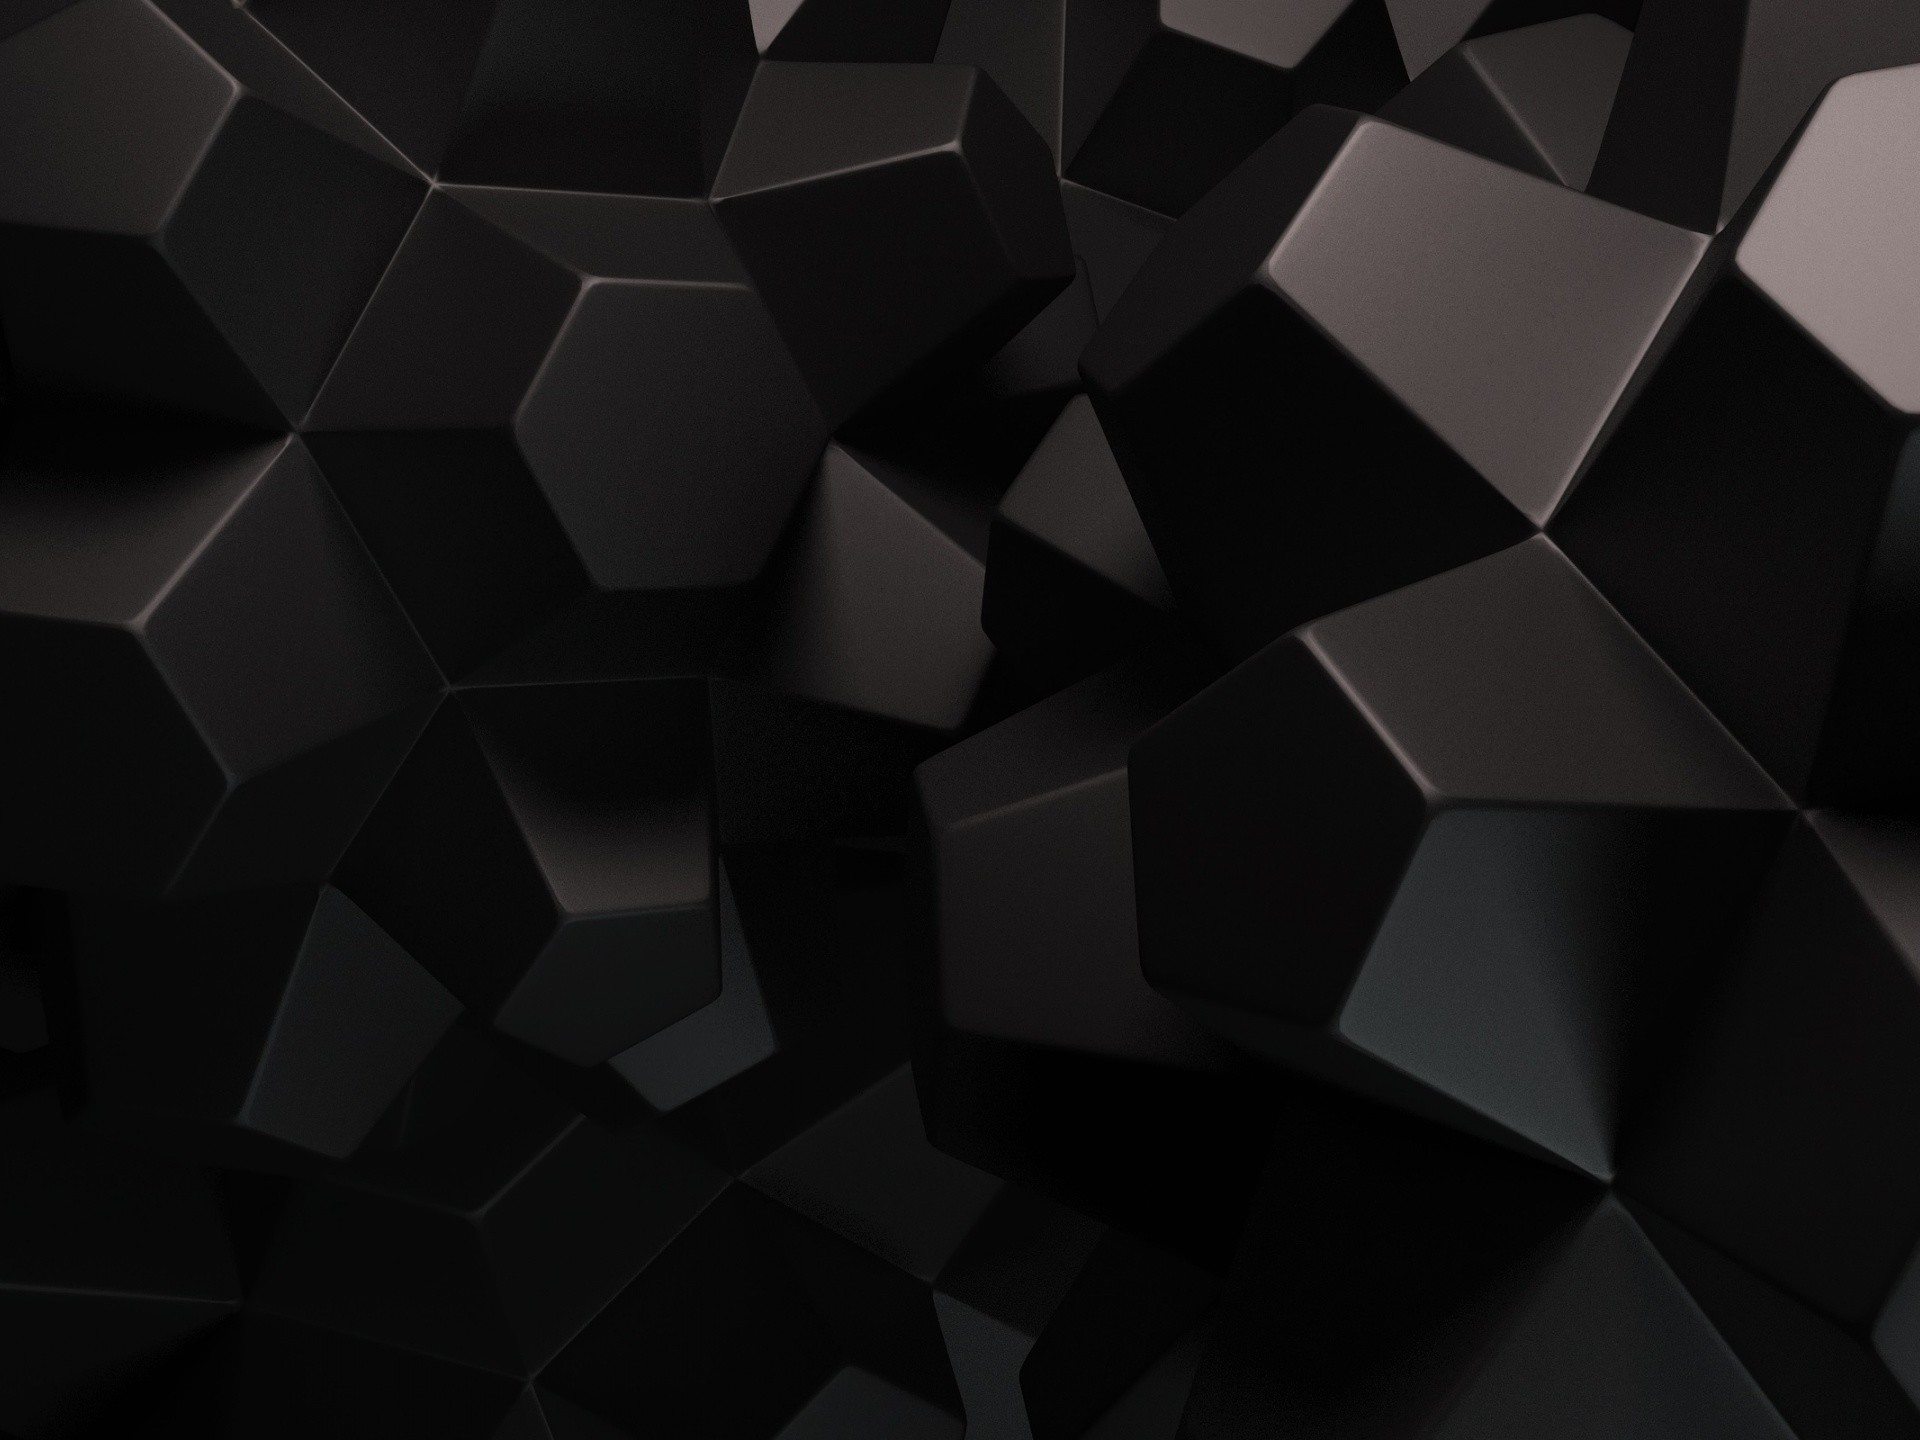 1920x1440  Abstract Black Shapes. How to set wallpaper on your desktop?  Click the download link from above and set the wallpaper on the desktop  from your OS.